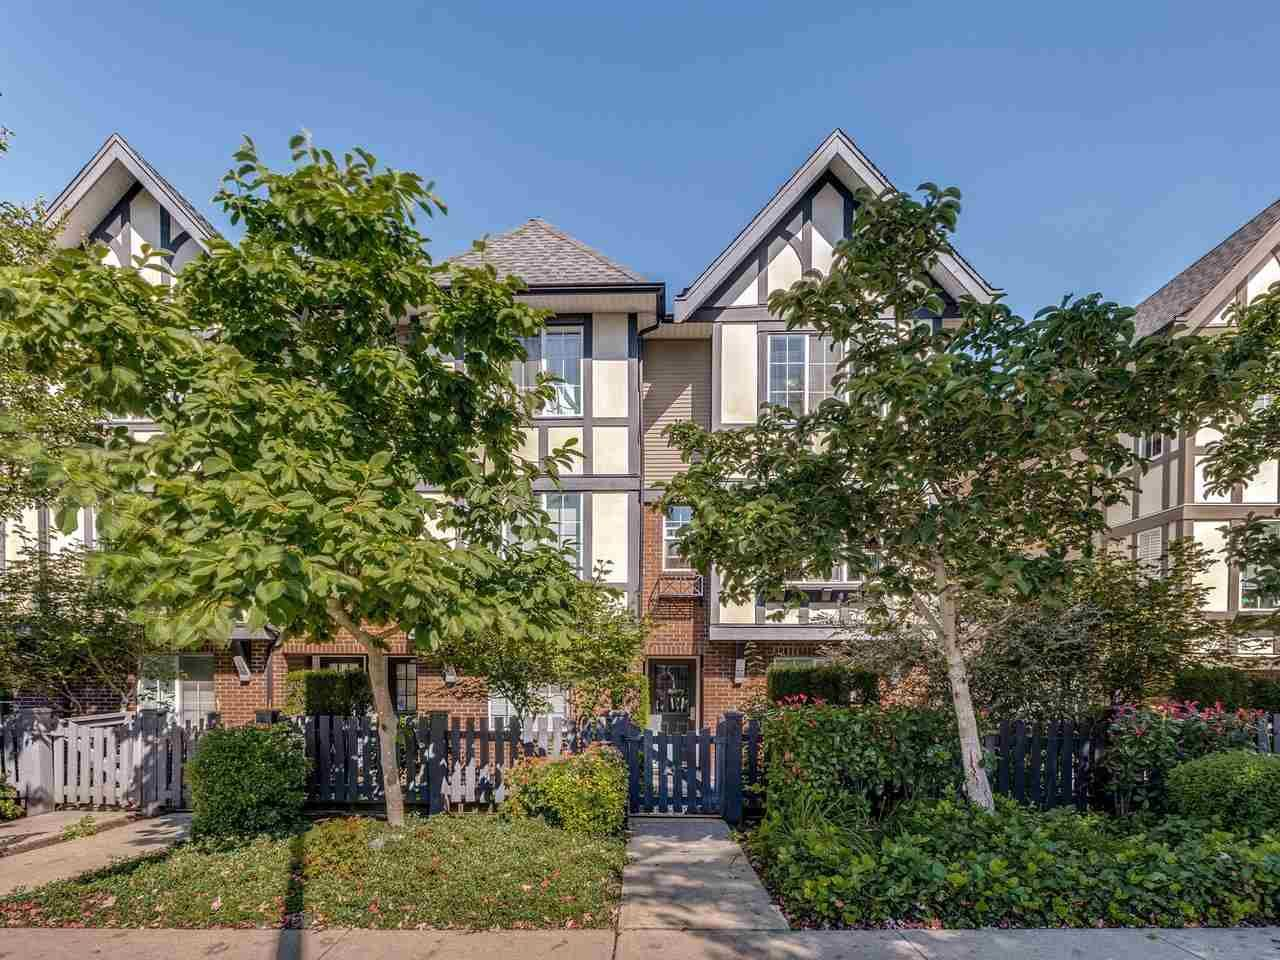 Main Photo: 27 20875 80 AVENUE in Langley: Willoughby Heights Townhouse for sale : MLS®# R2495219